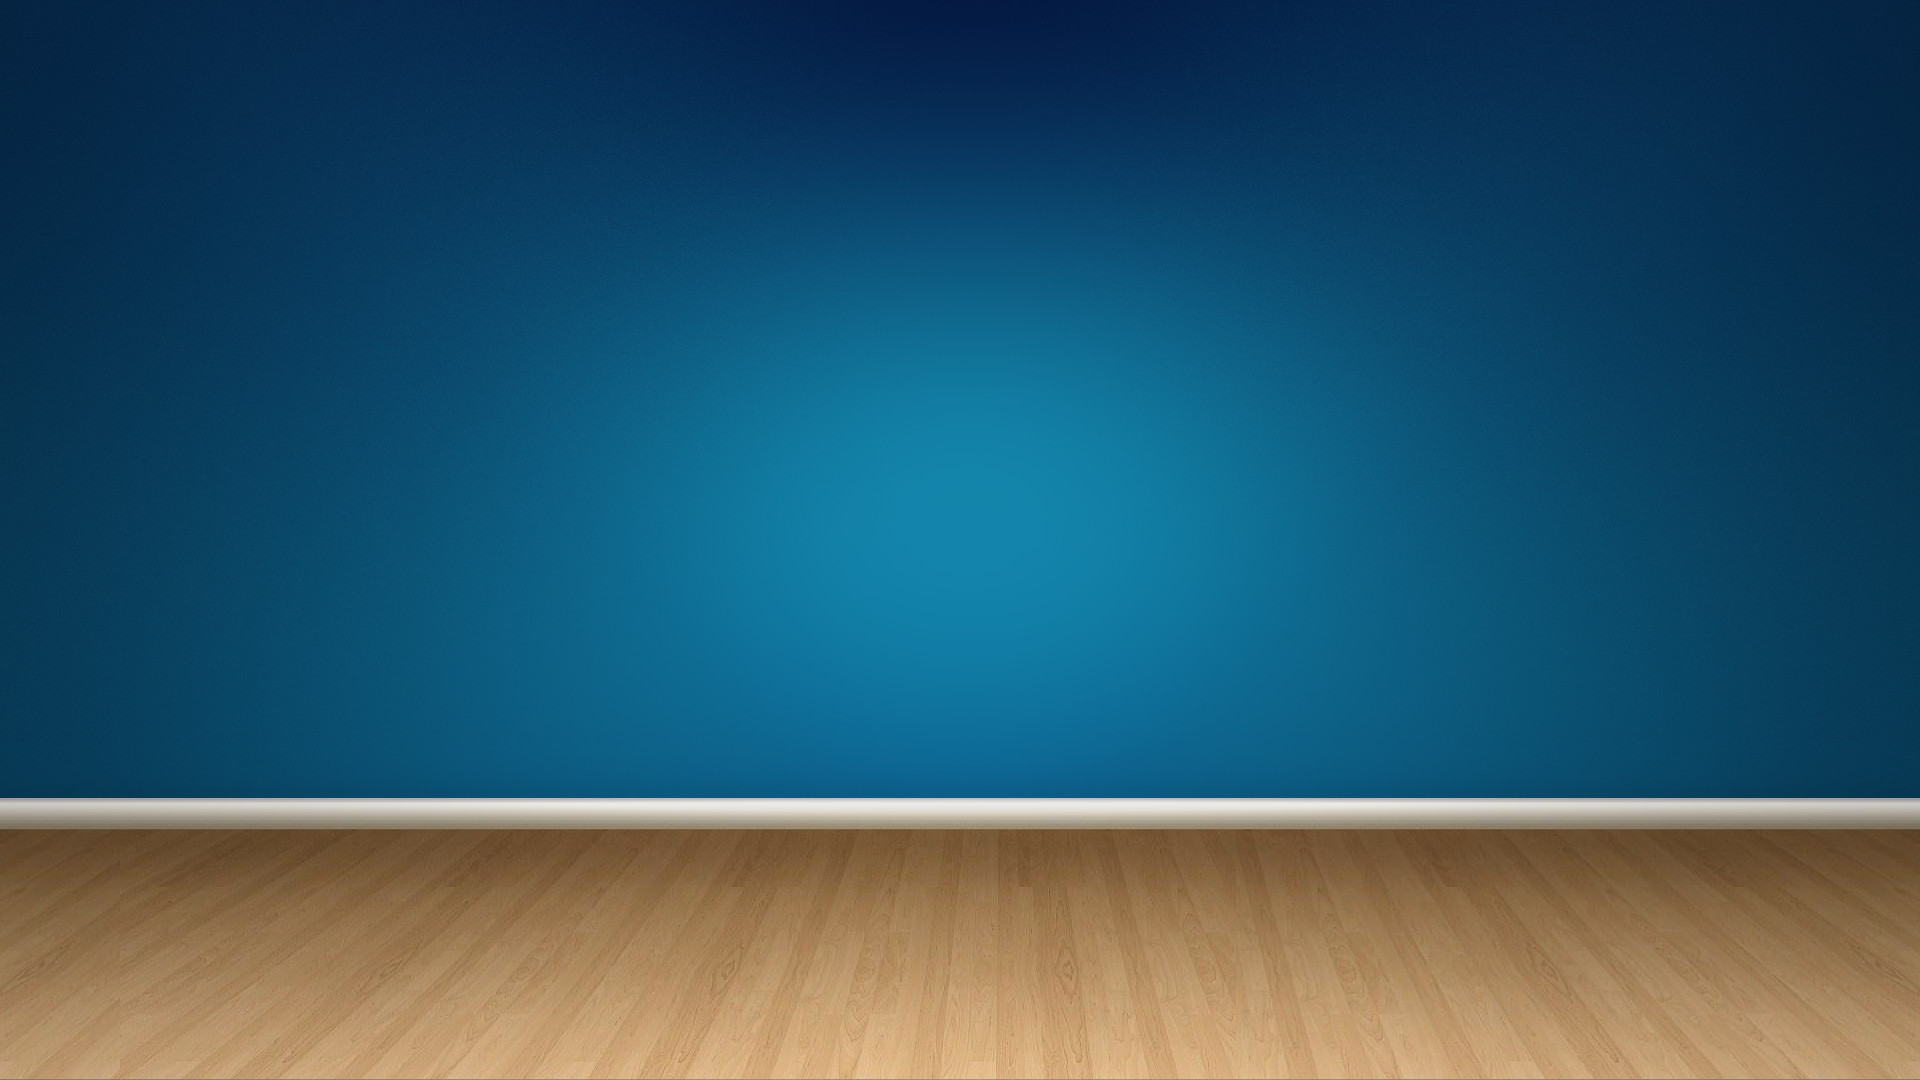 Blue Wall And Wood Floor …